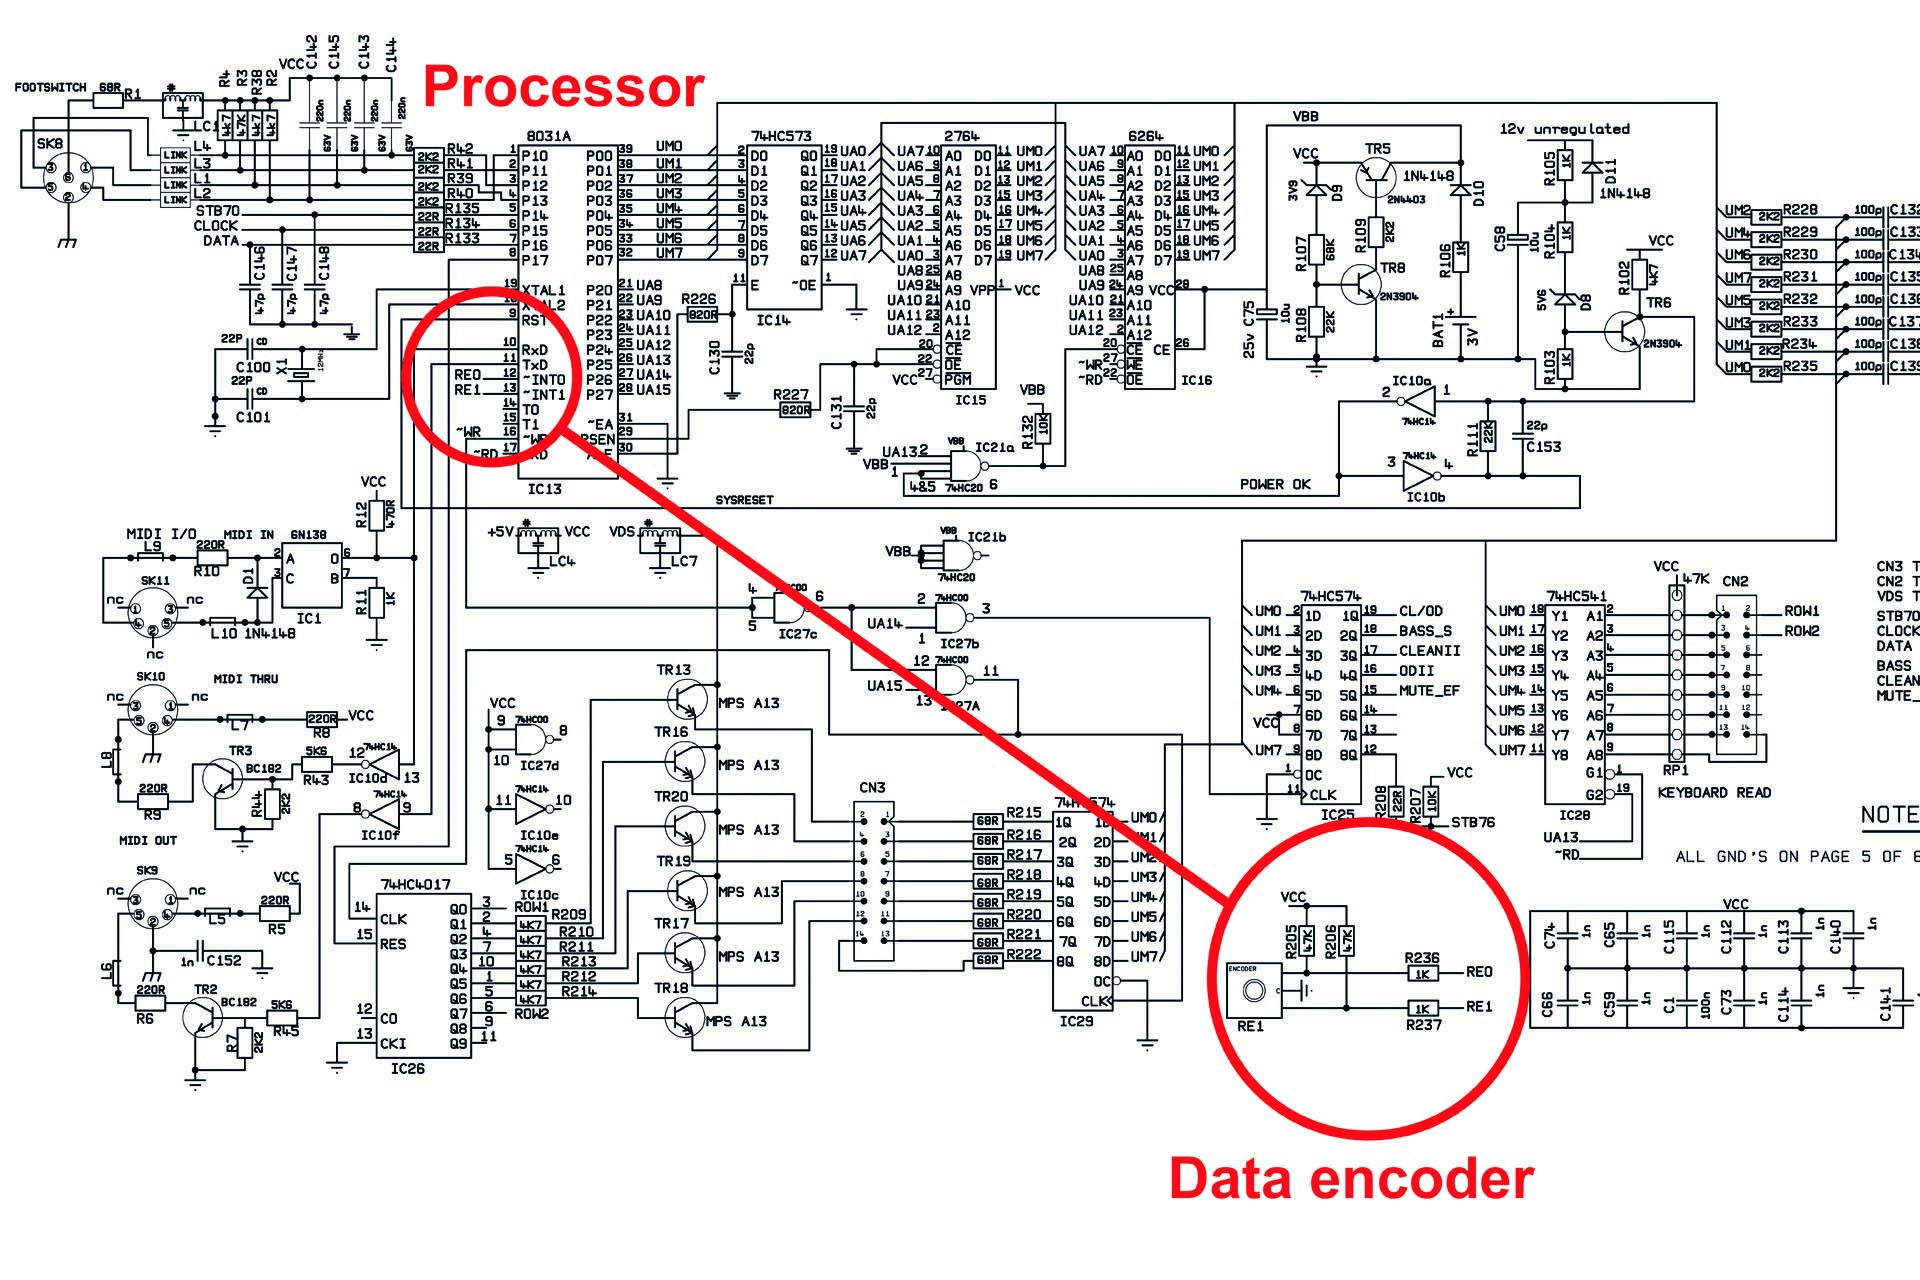 The encoder is connected directly to the processor in the Marshall JMP-1